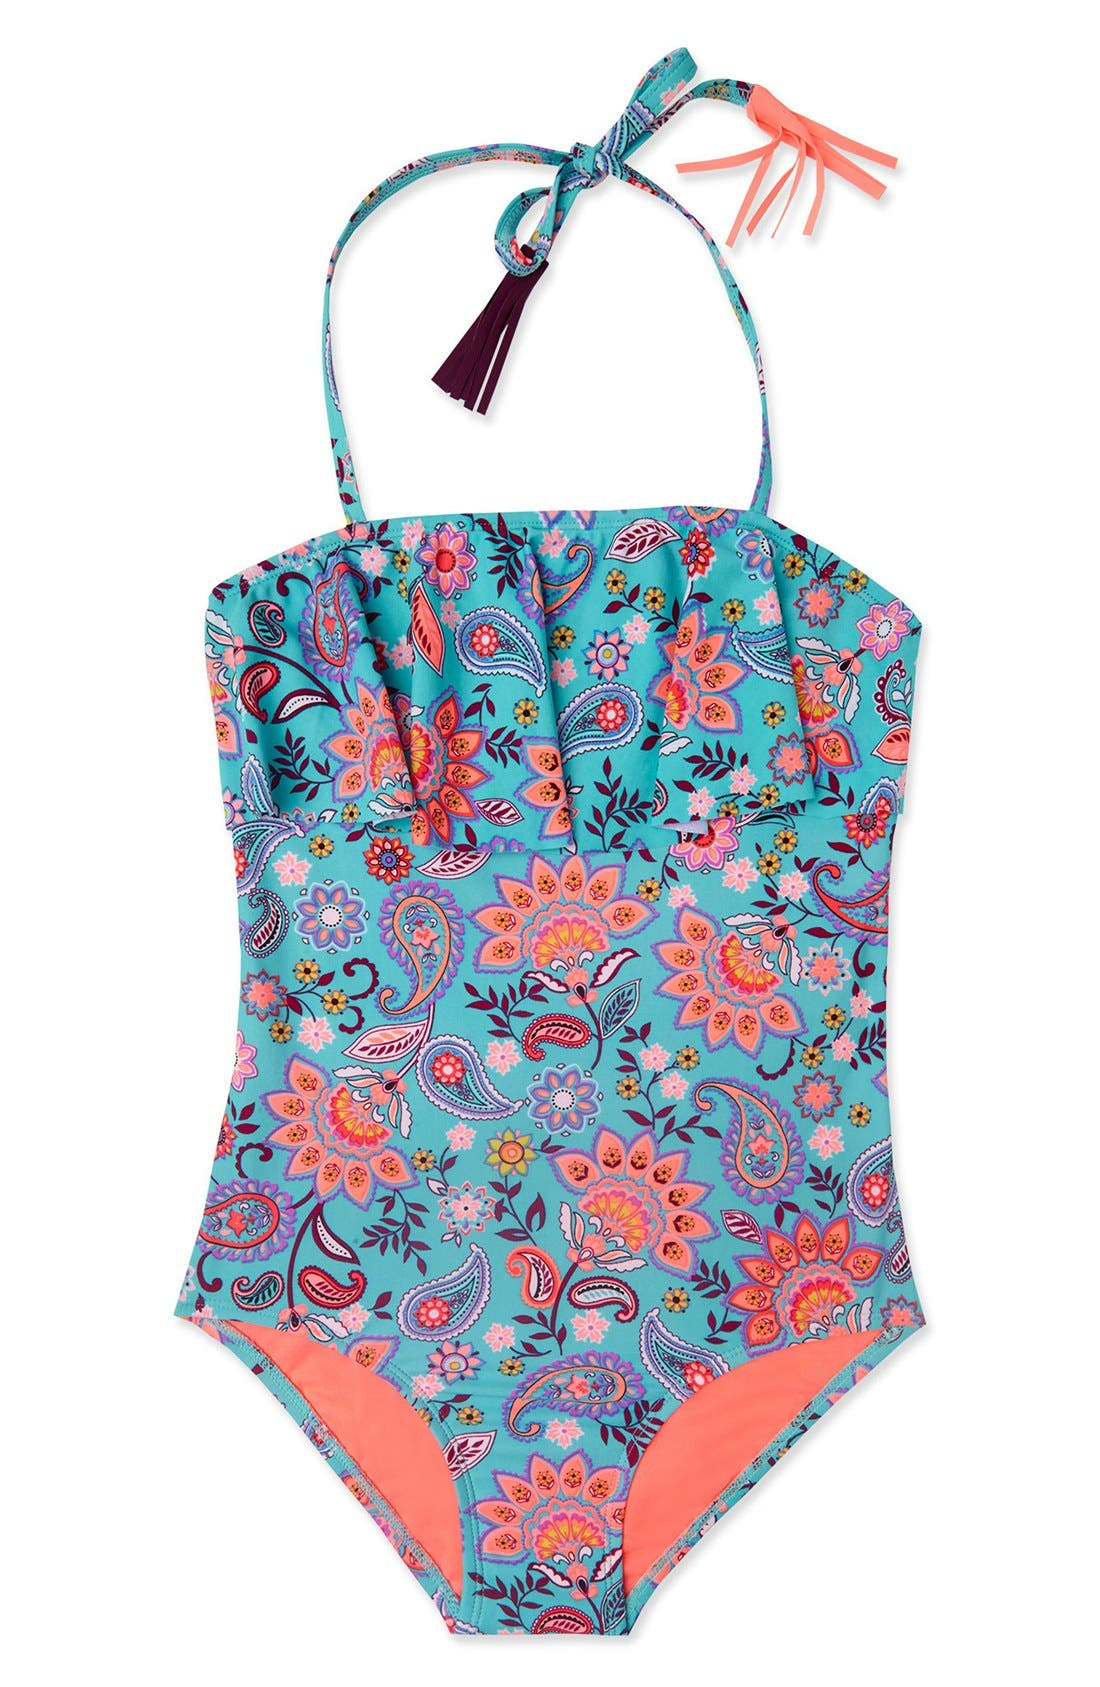 'Le Corsaire' Print One-Piece Swimsuit,                         Main,                         color, Aqua Brown